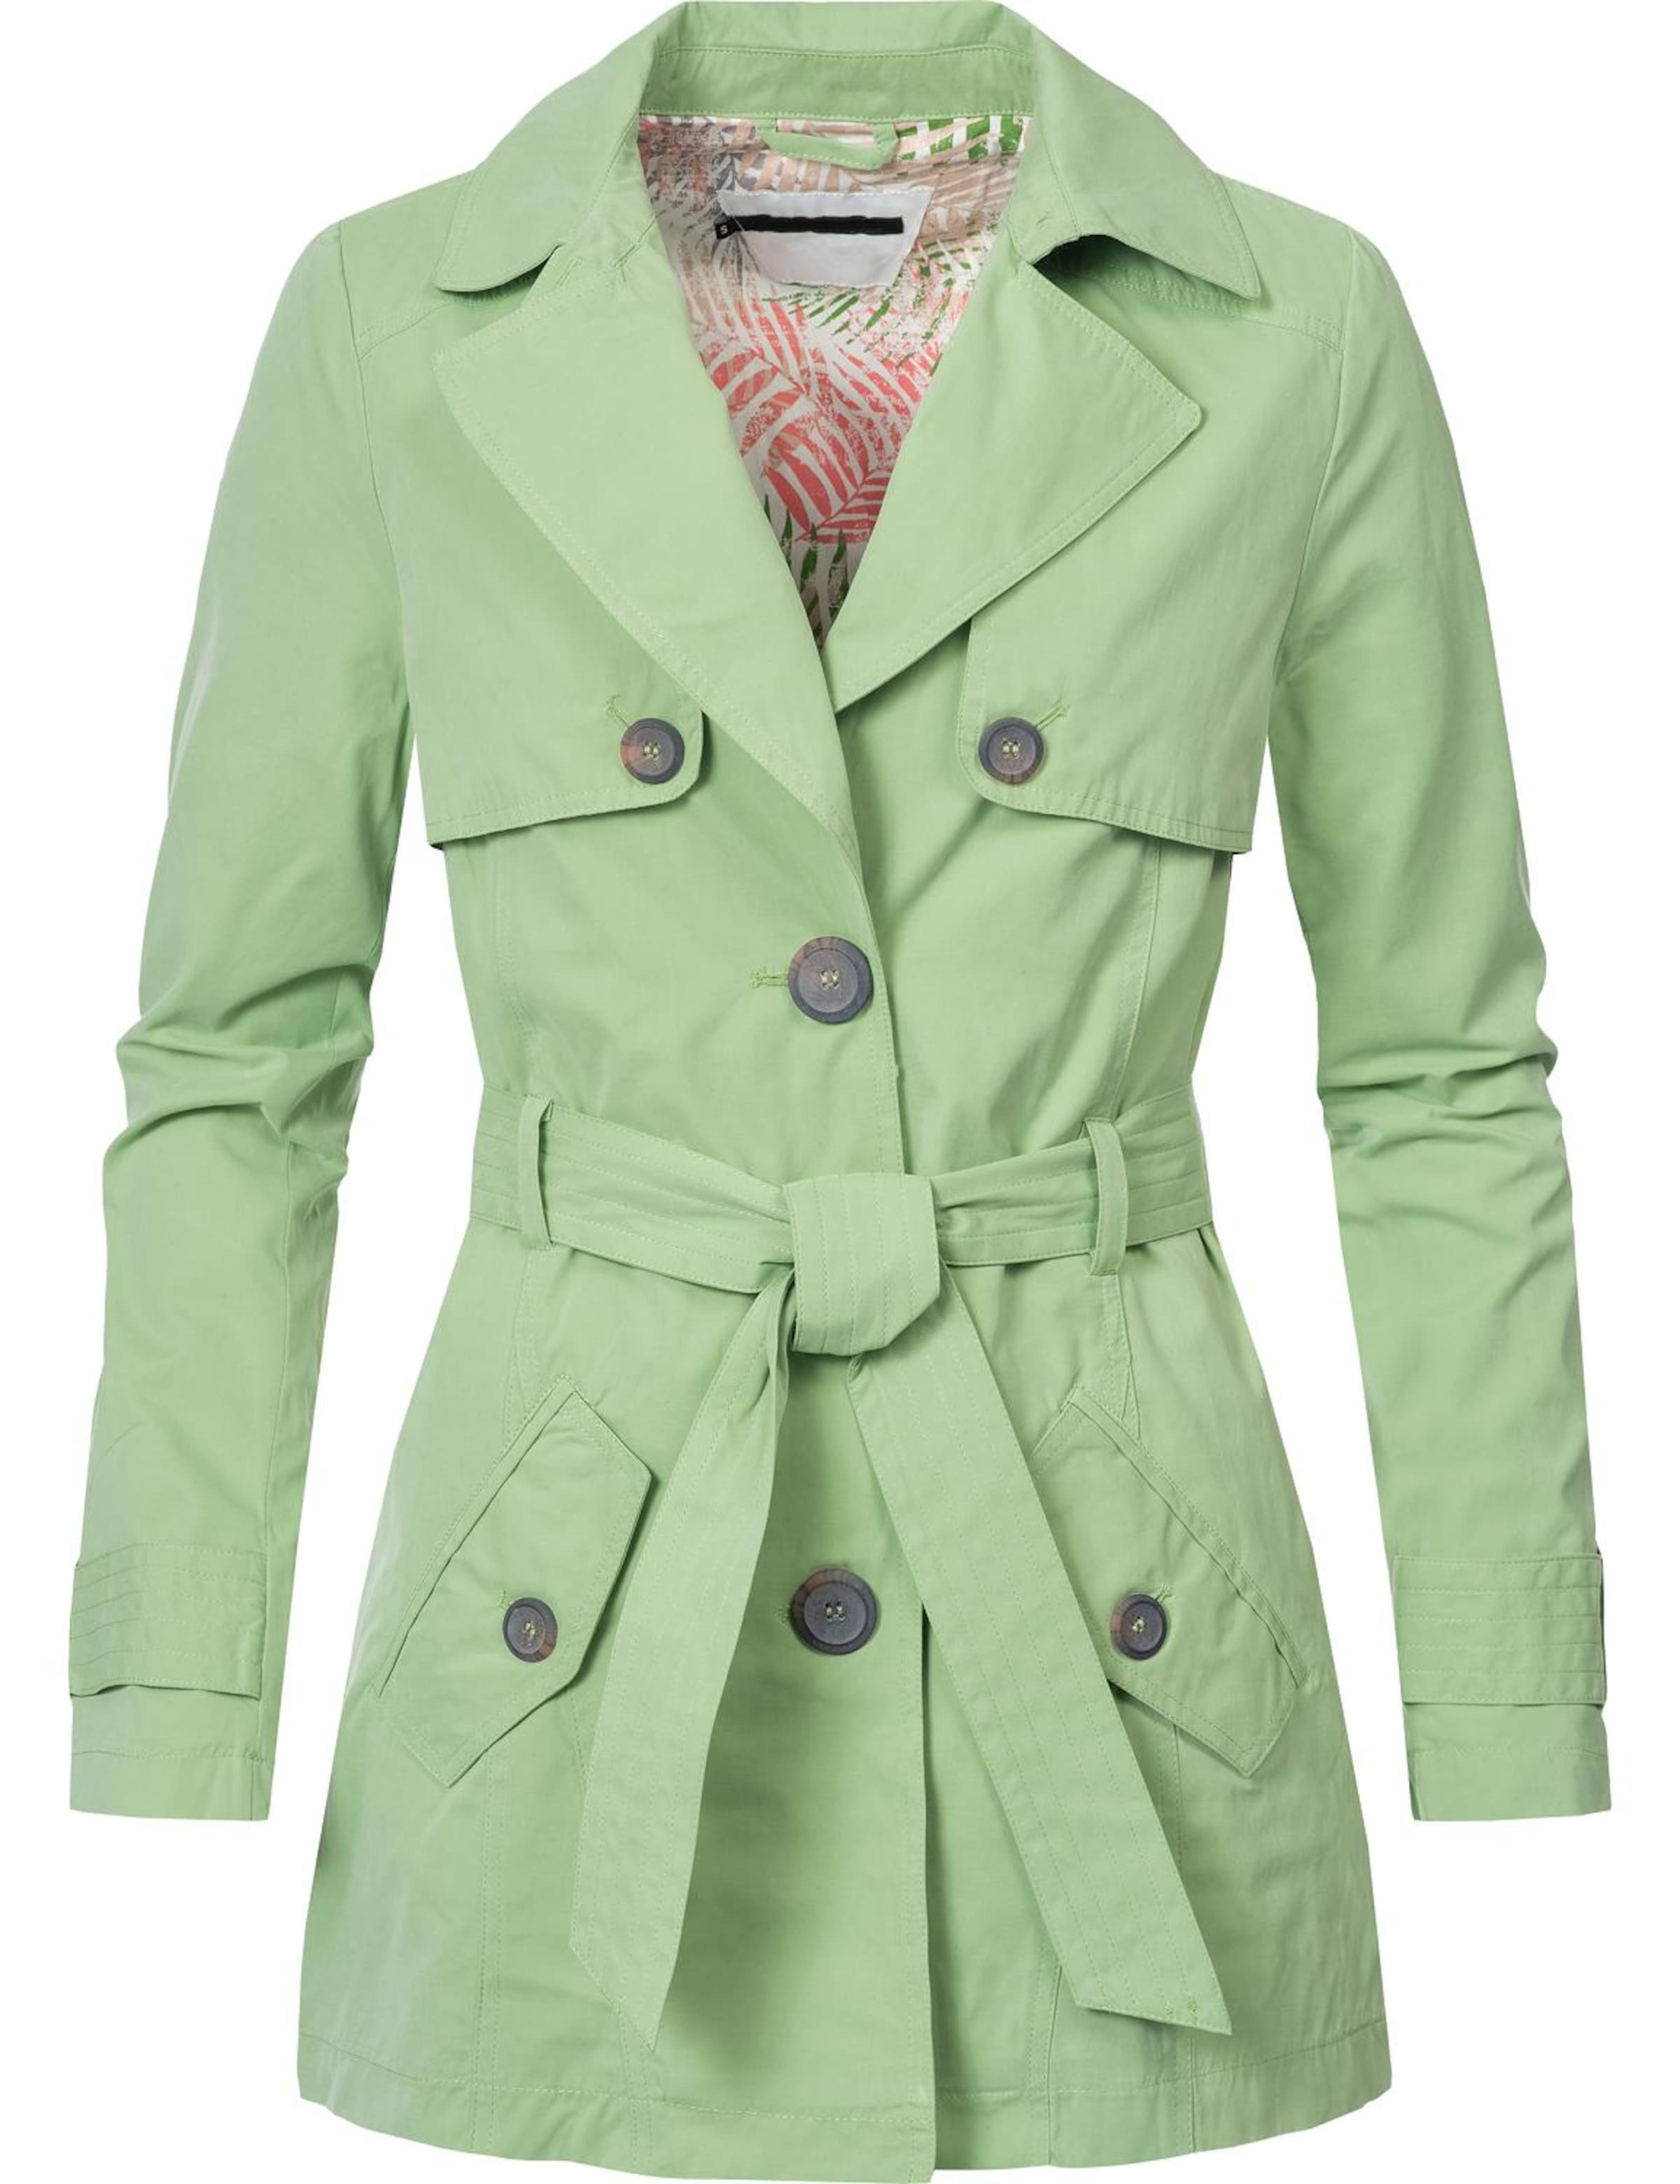 Peak Time Trenchcoat Mint 'l60099' In HDI9YWE2